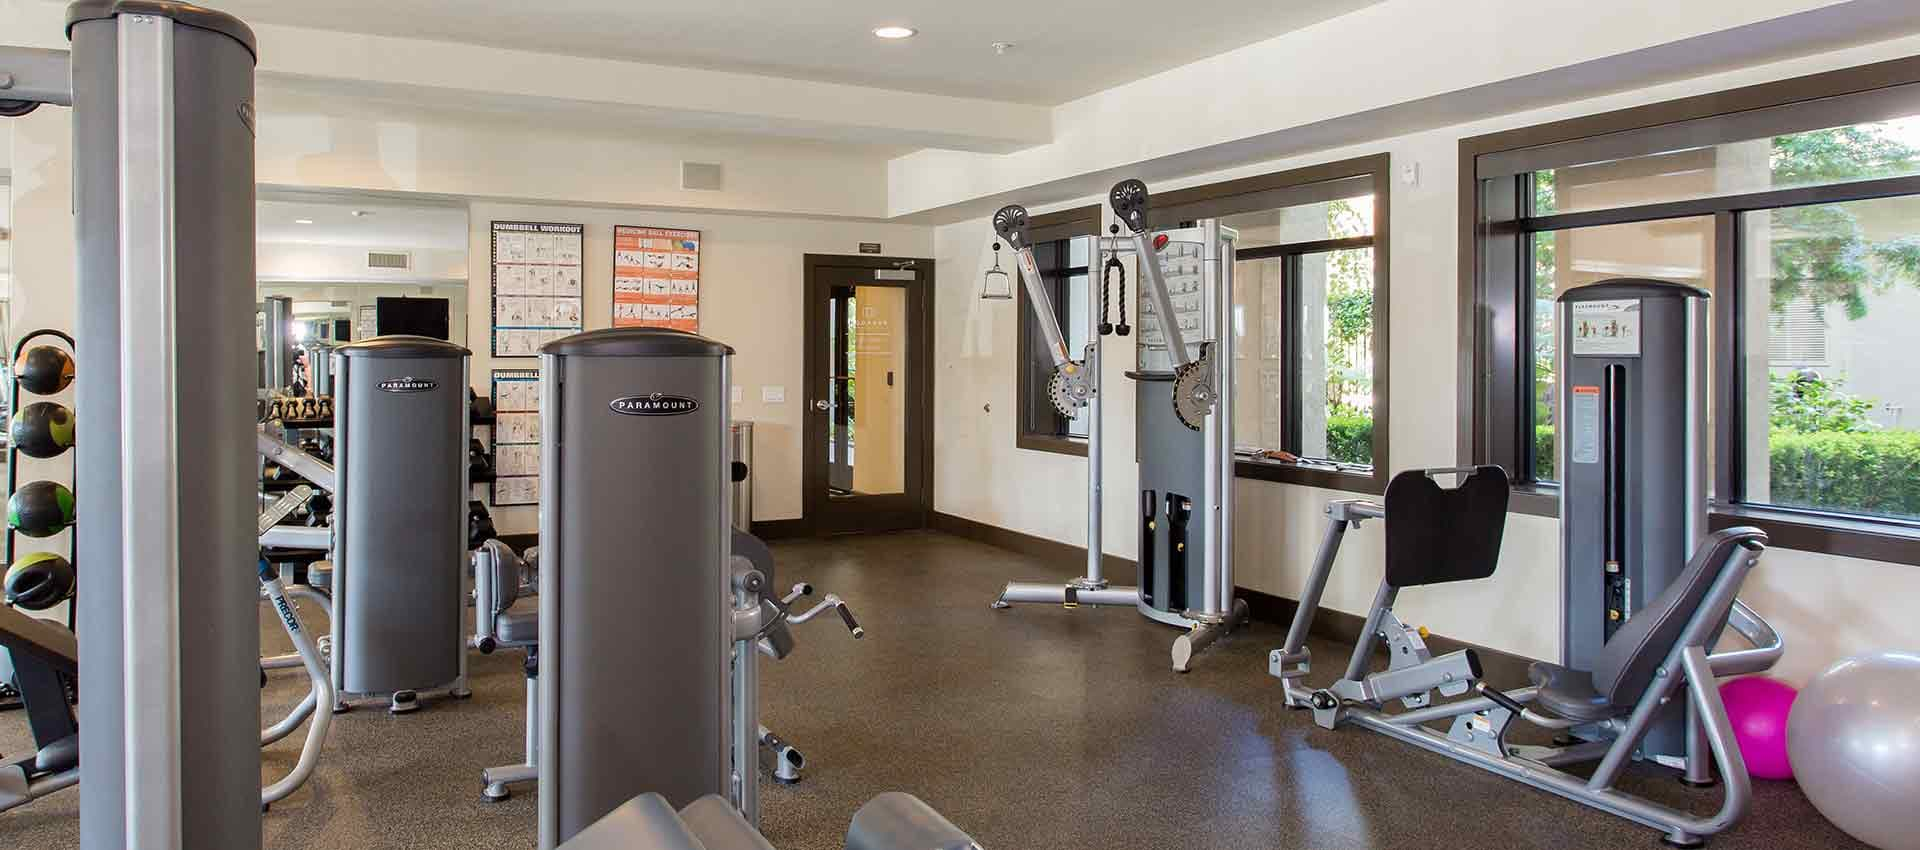 Fitness center at Paragon at Old Town in Monrovia